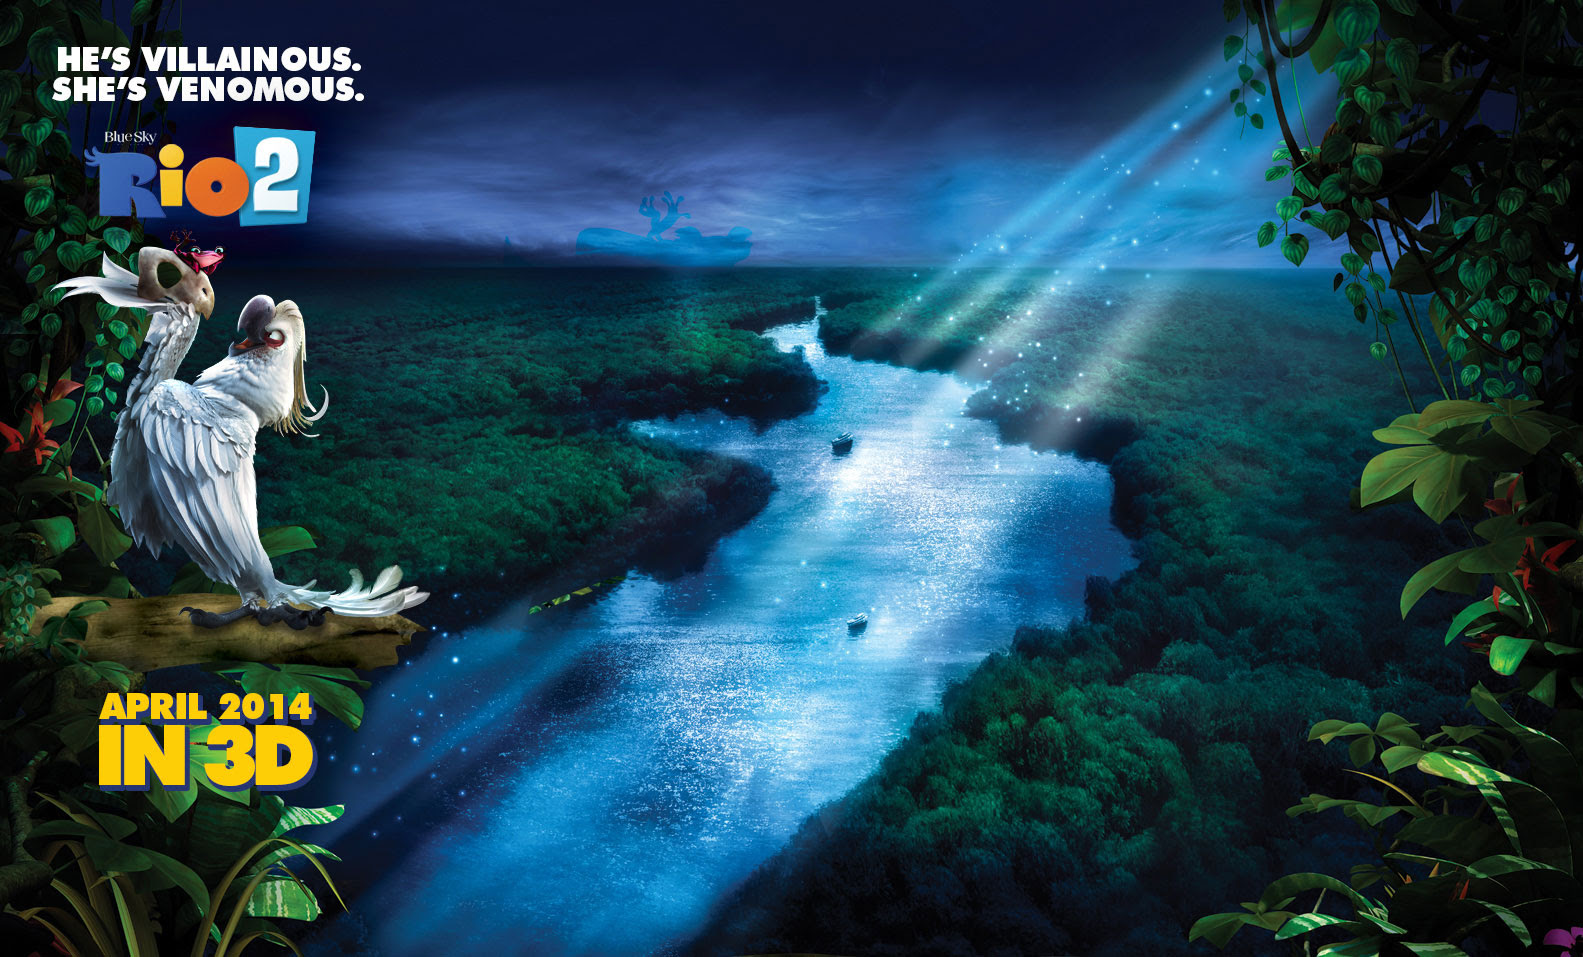 Free HD Rio 2 Movie Wallpapers  Desktop Backgrounds 2014